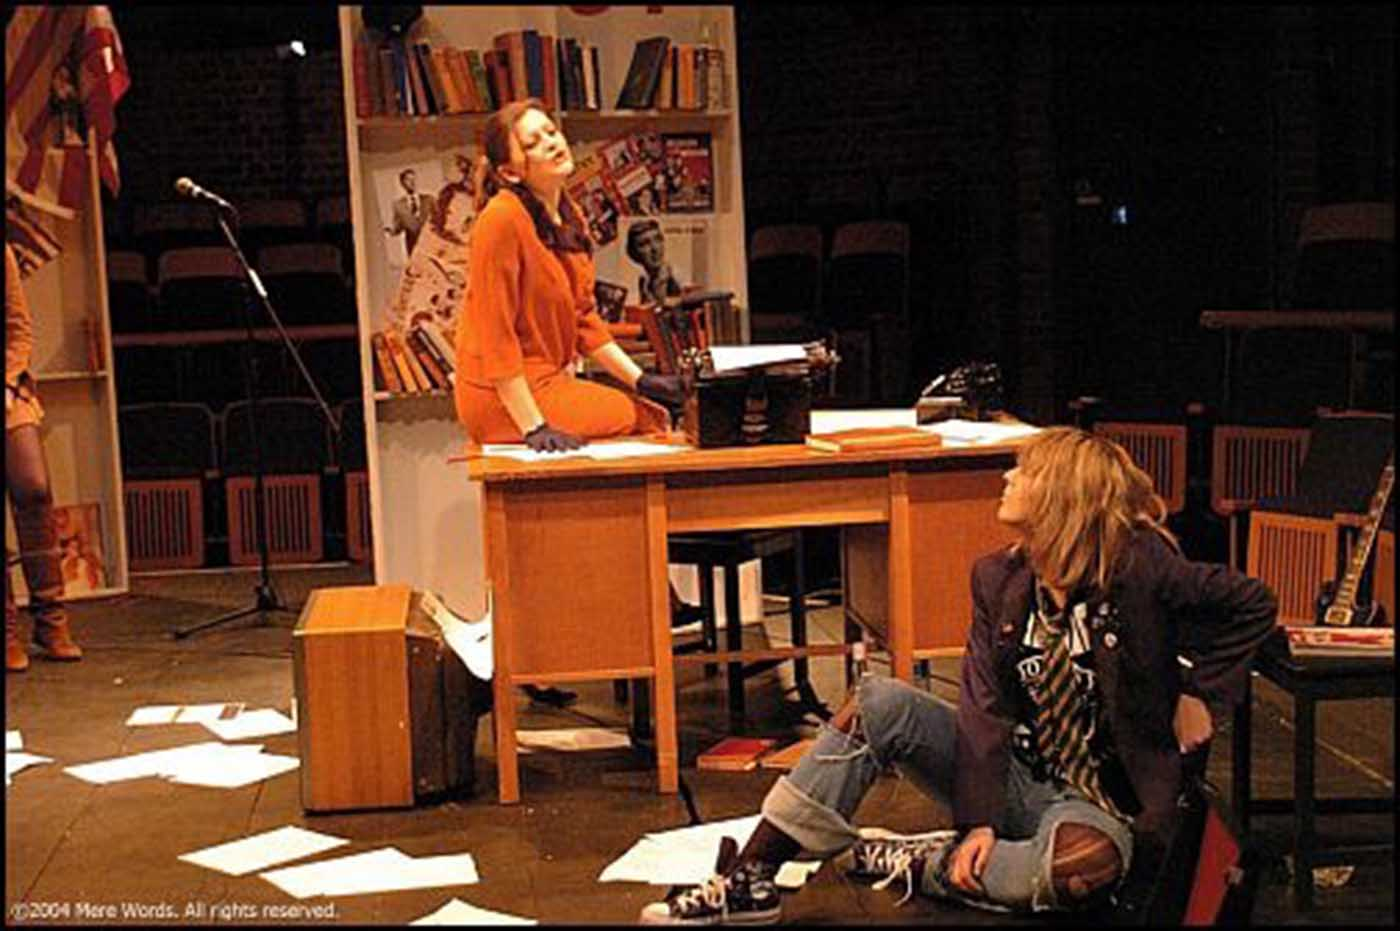 Figures - Steven Dykes - Playwright